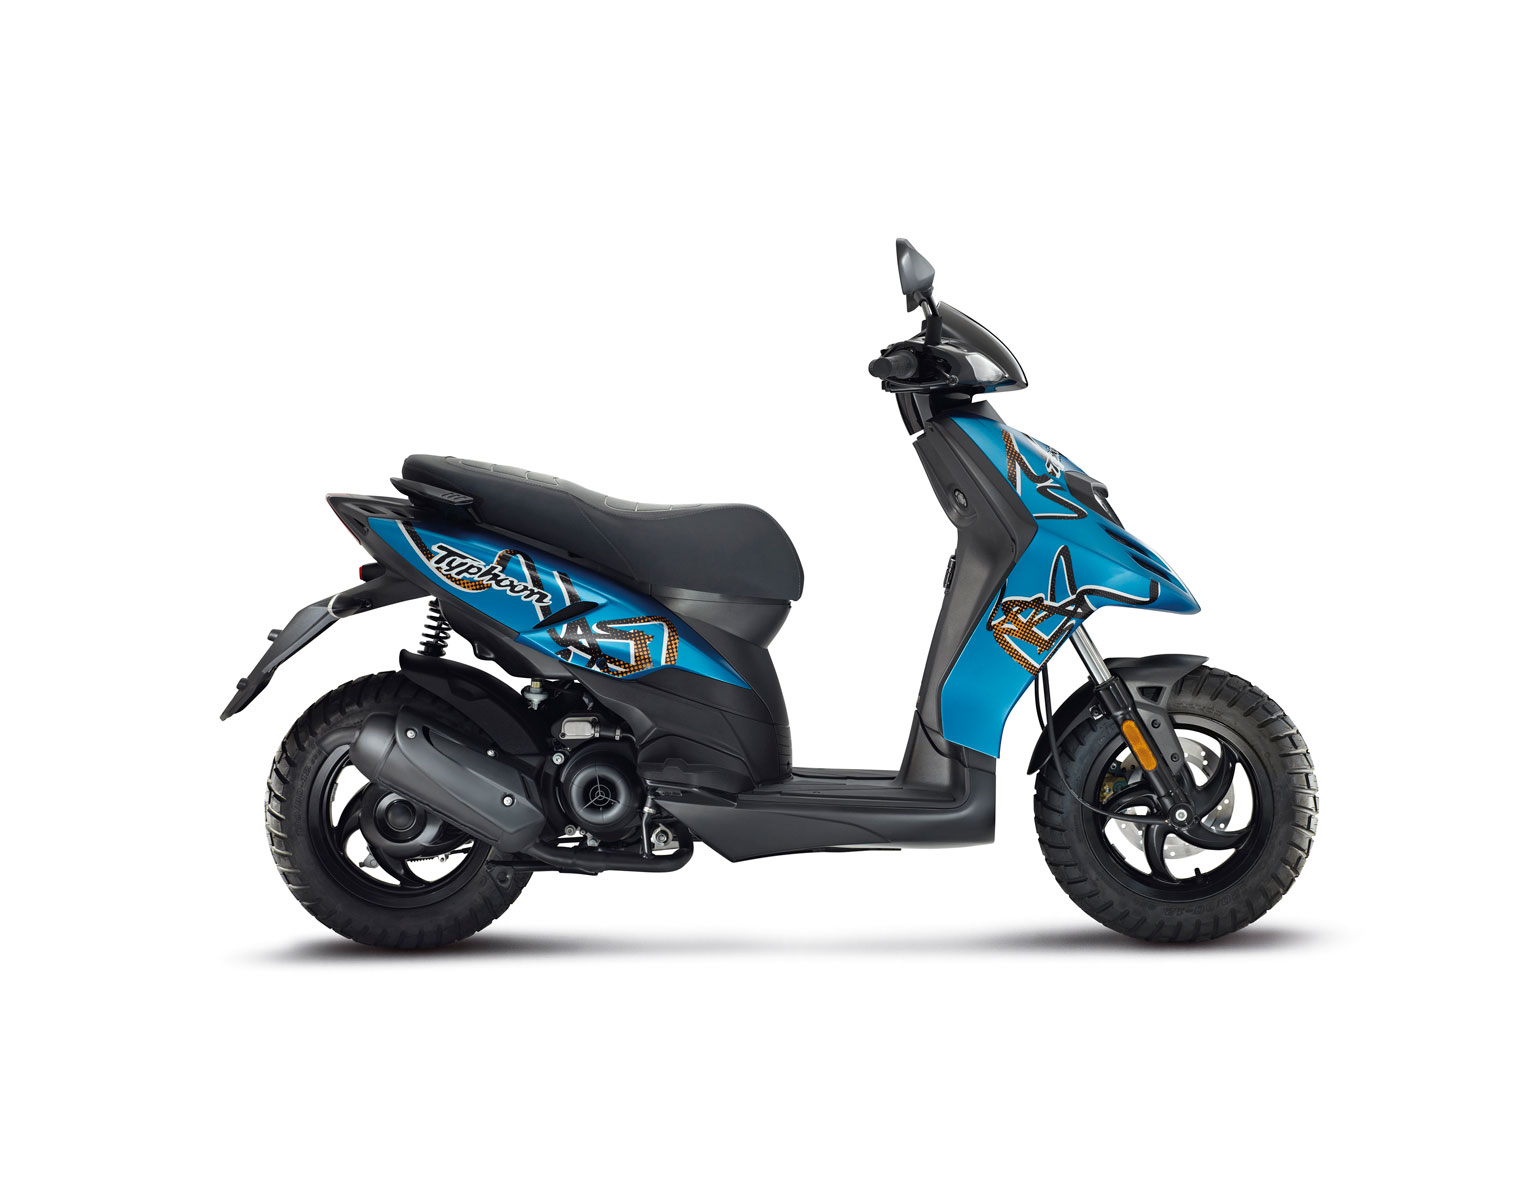 2015 piaggio typhoon 50 review. Black Bedroom Furniture Sets. Home Design Ideas